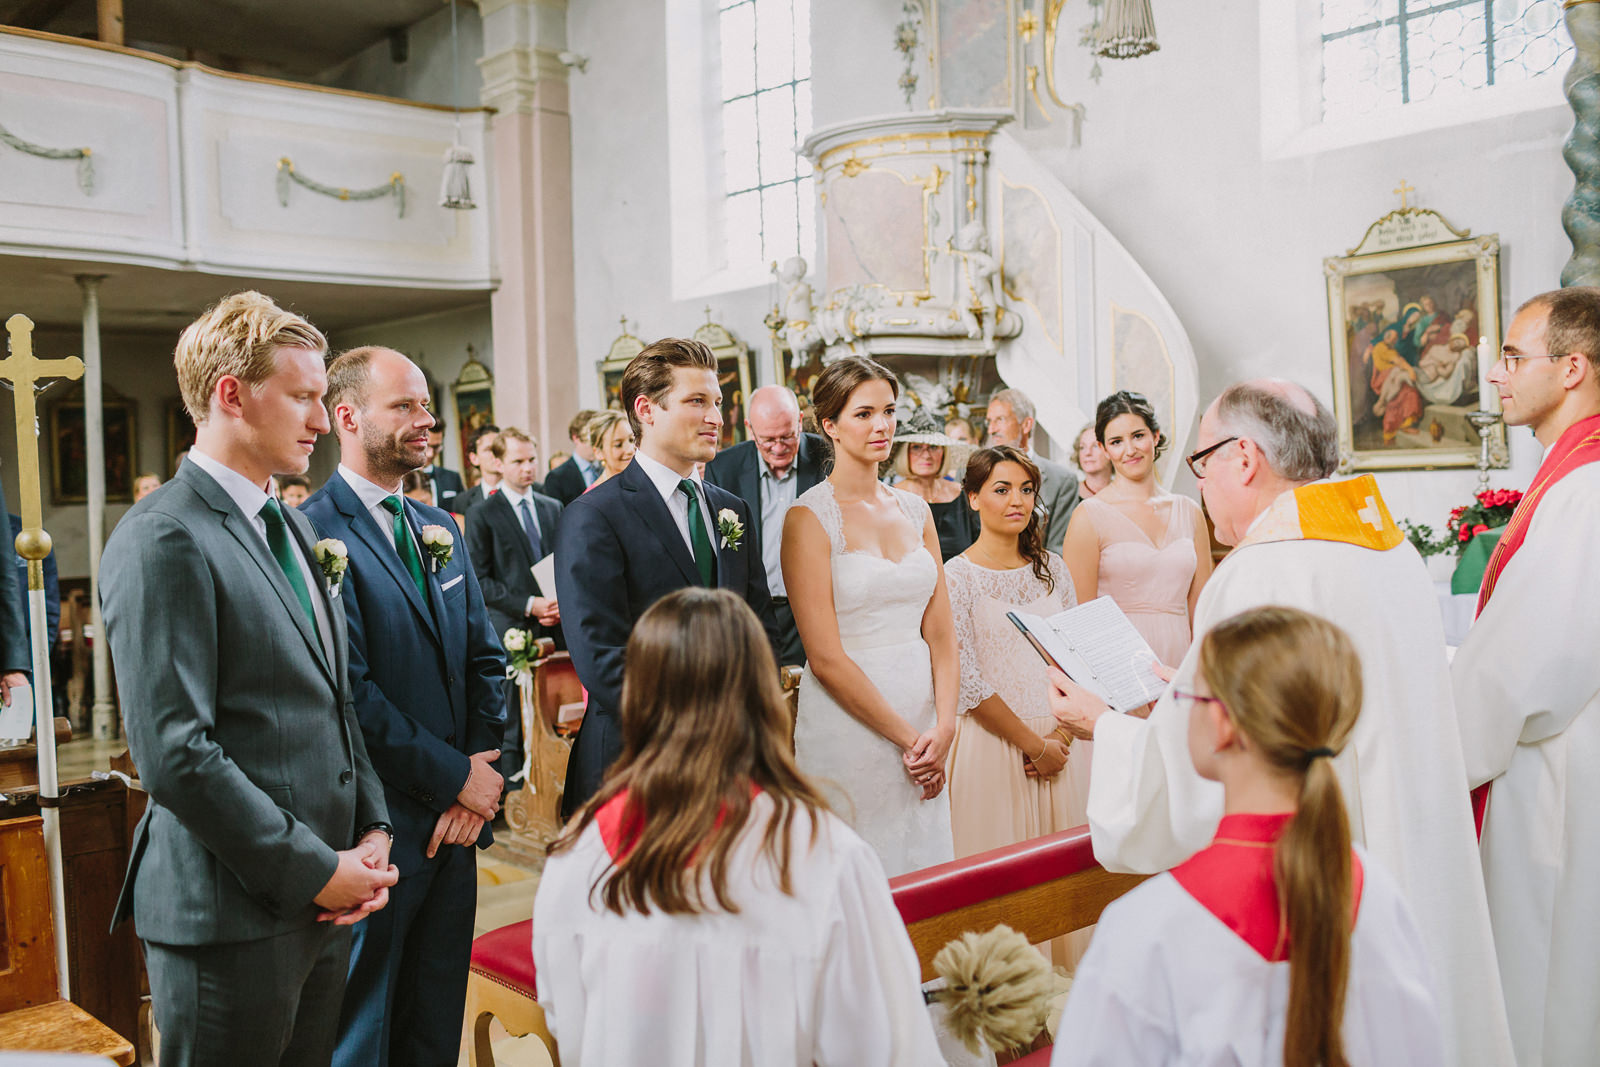 traditional church wedding ceremony in germany